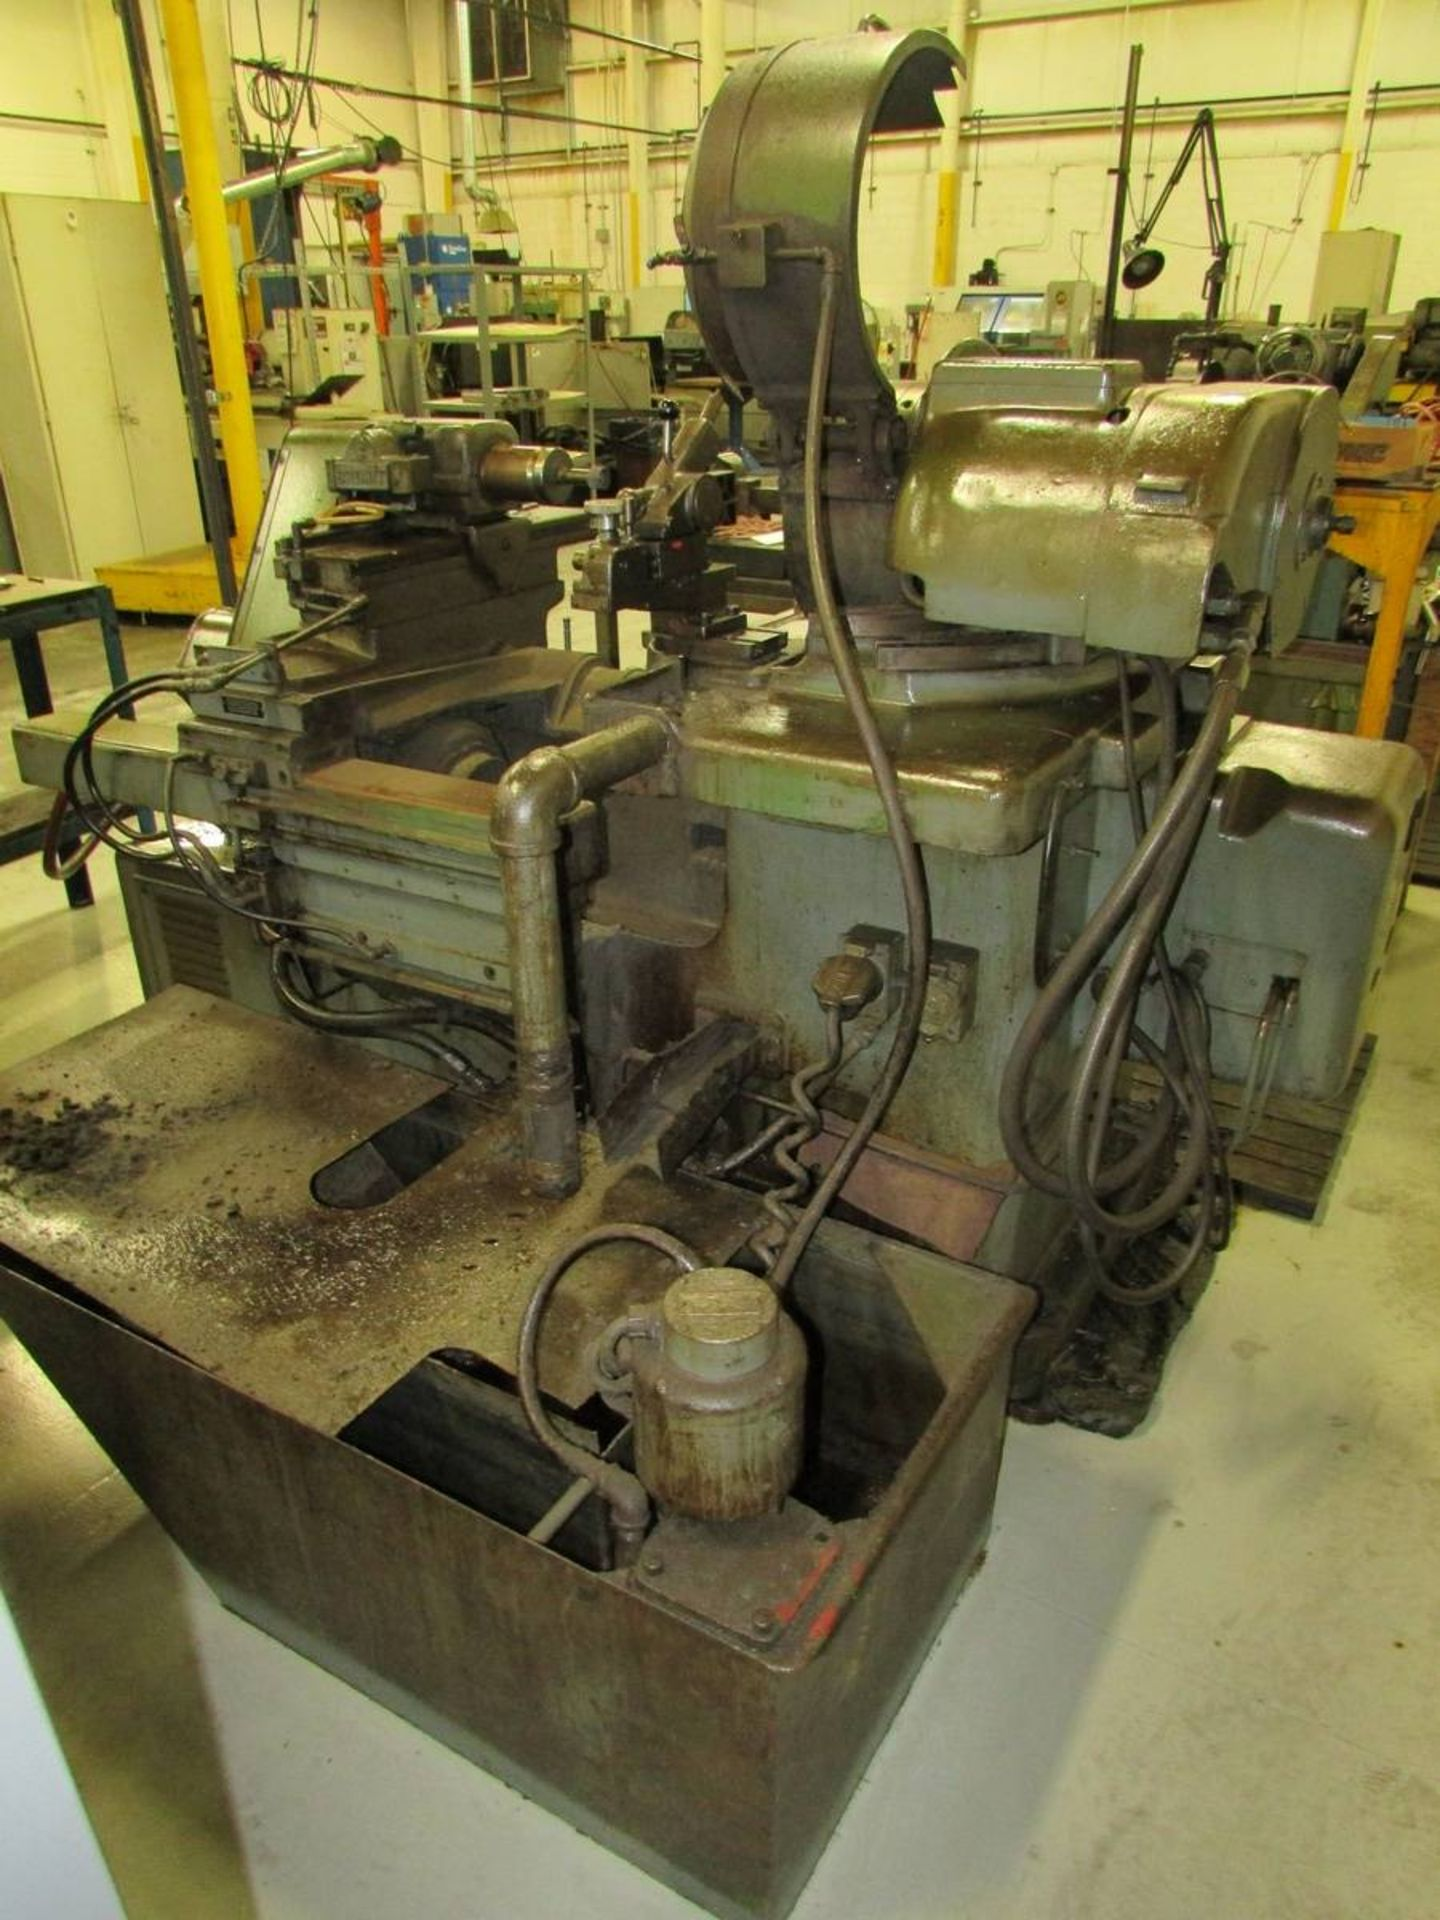 1981 Bryant 1116 ID Cylindrical Grinder - Image 15 of 20